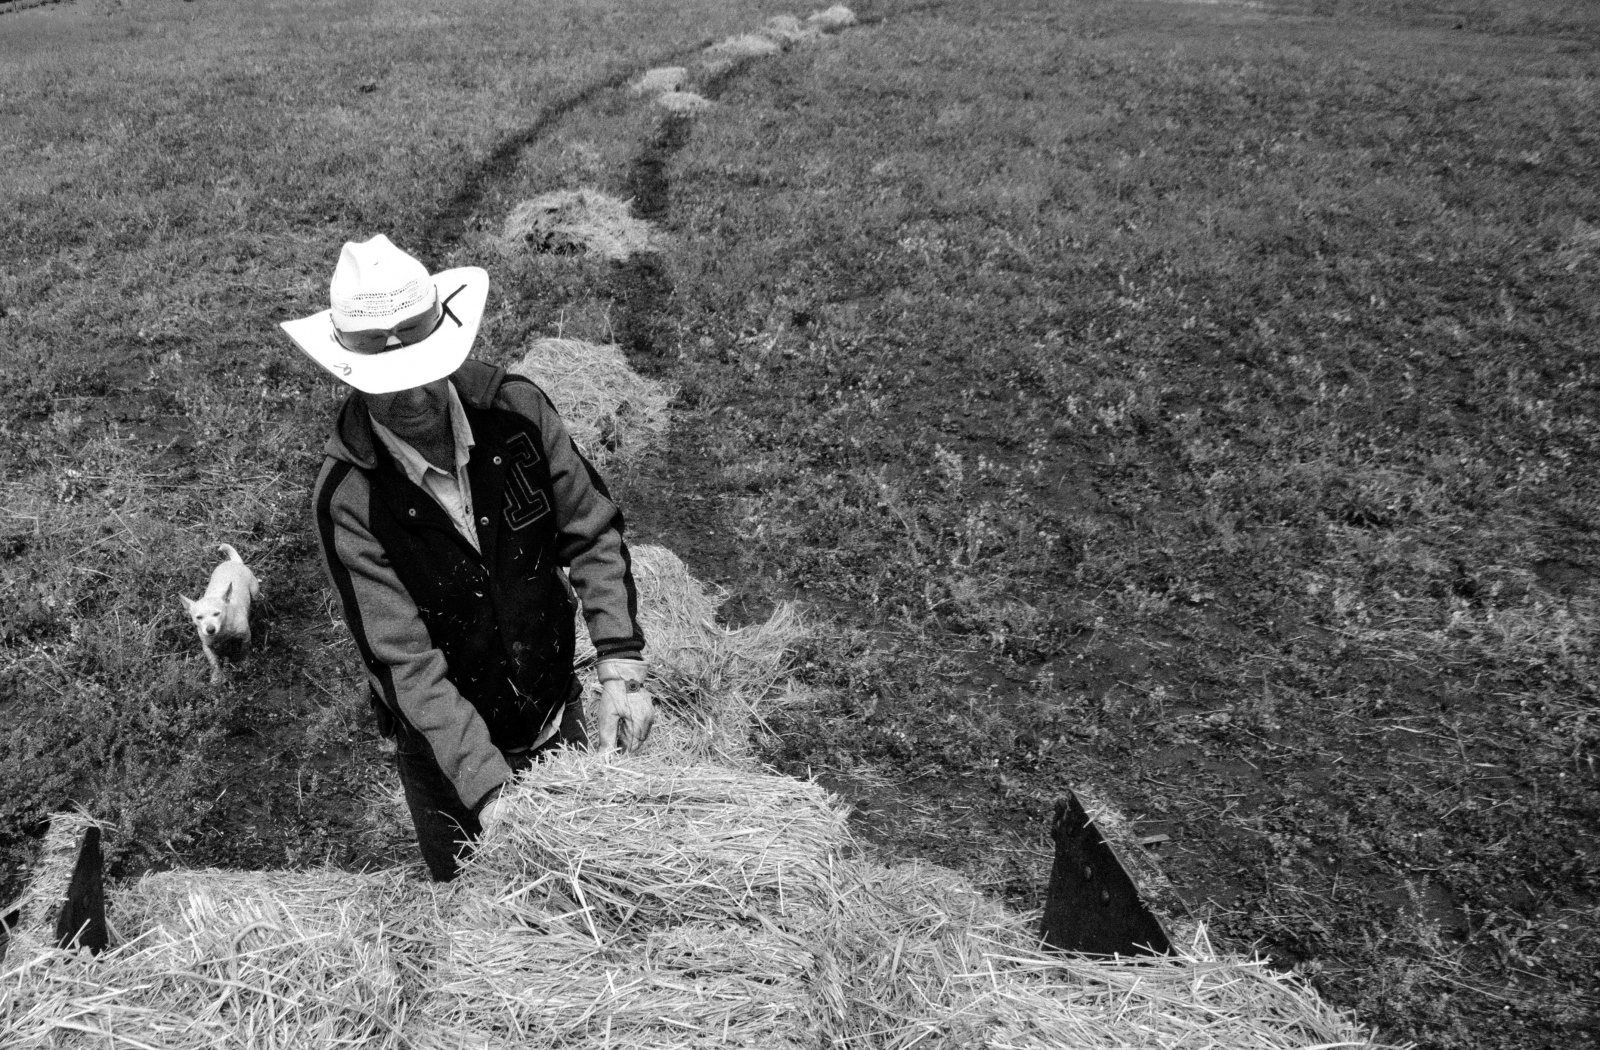 Juan, escorted by Stuart, has a system when setting hay out in the pastures.  He sets up the 4-wheeler on a low gear then climbs out and follows behind, spreading the hay.